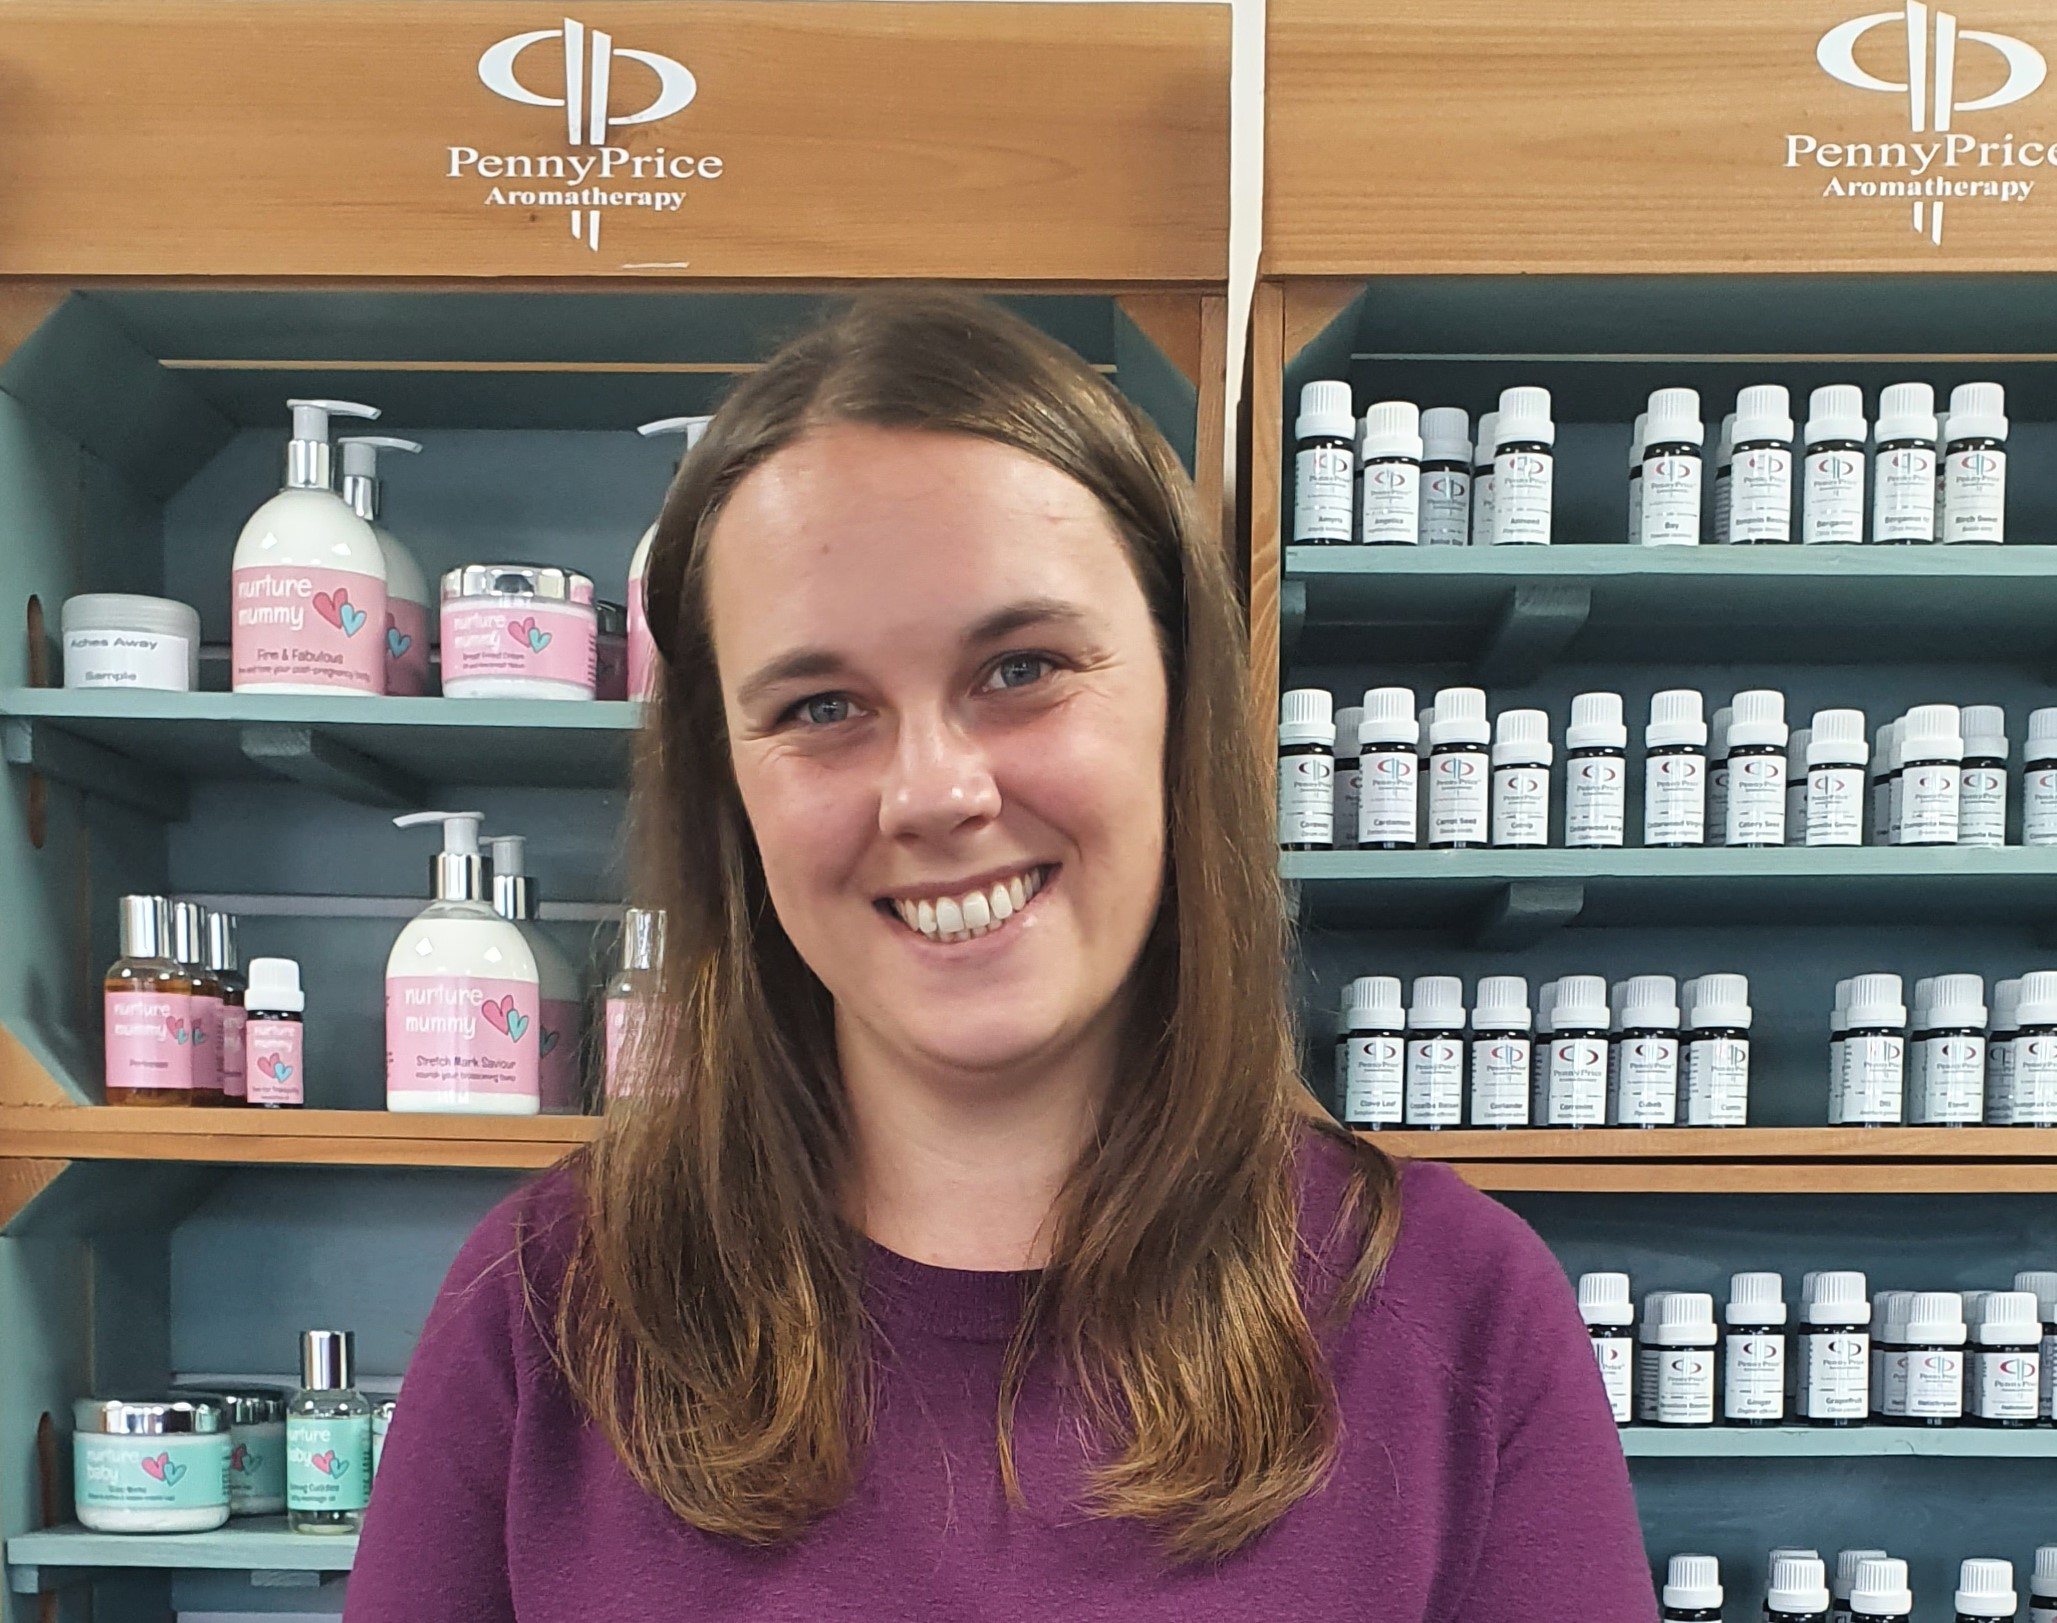 A woman with brown hair in a purple top stands in front of aromatherapy products